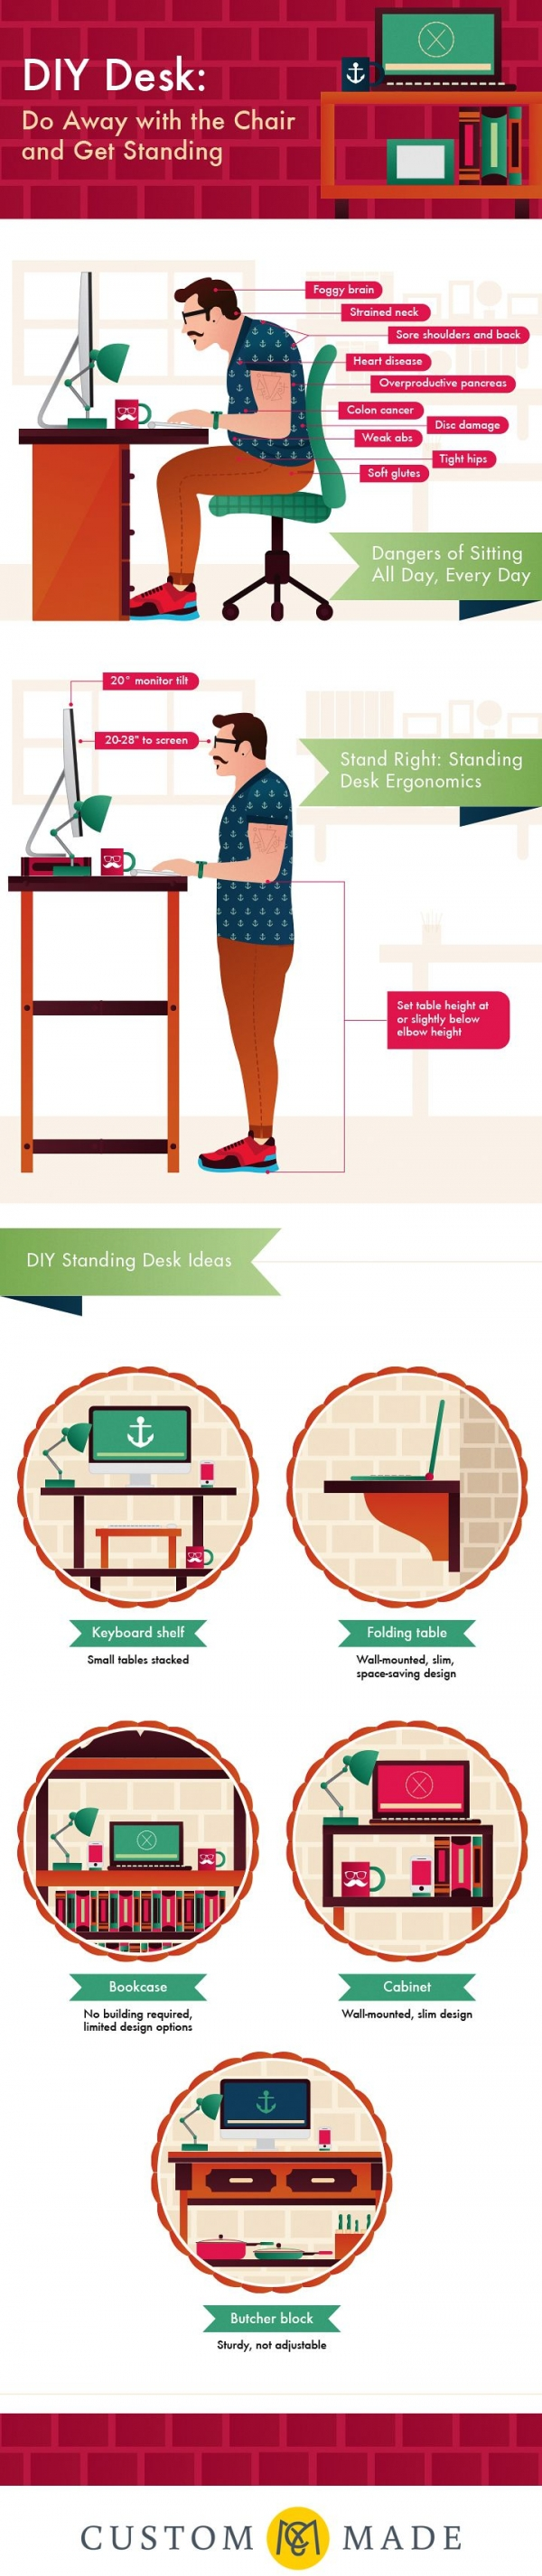 10 Reasons You Should Quit Sitting All Day